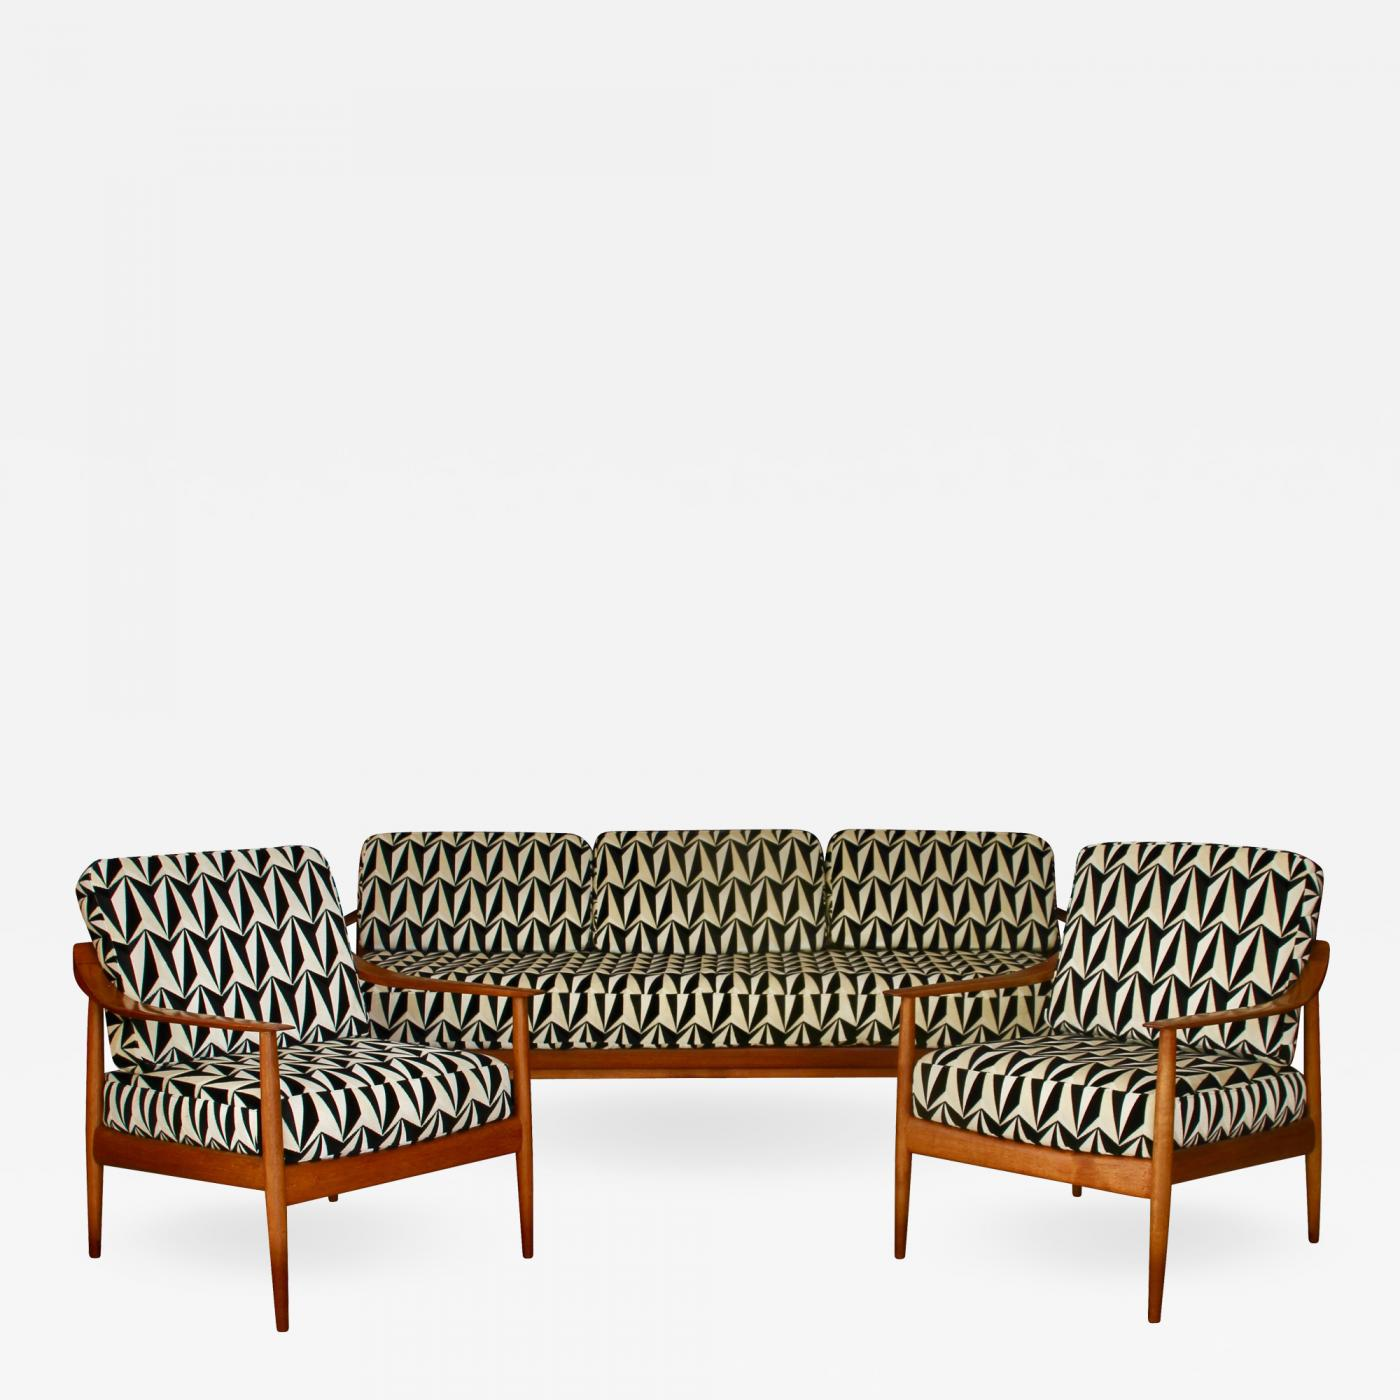 Walter Knoll Mid Century Seating Group By Walter Knoll Antimott Series